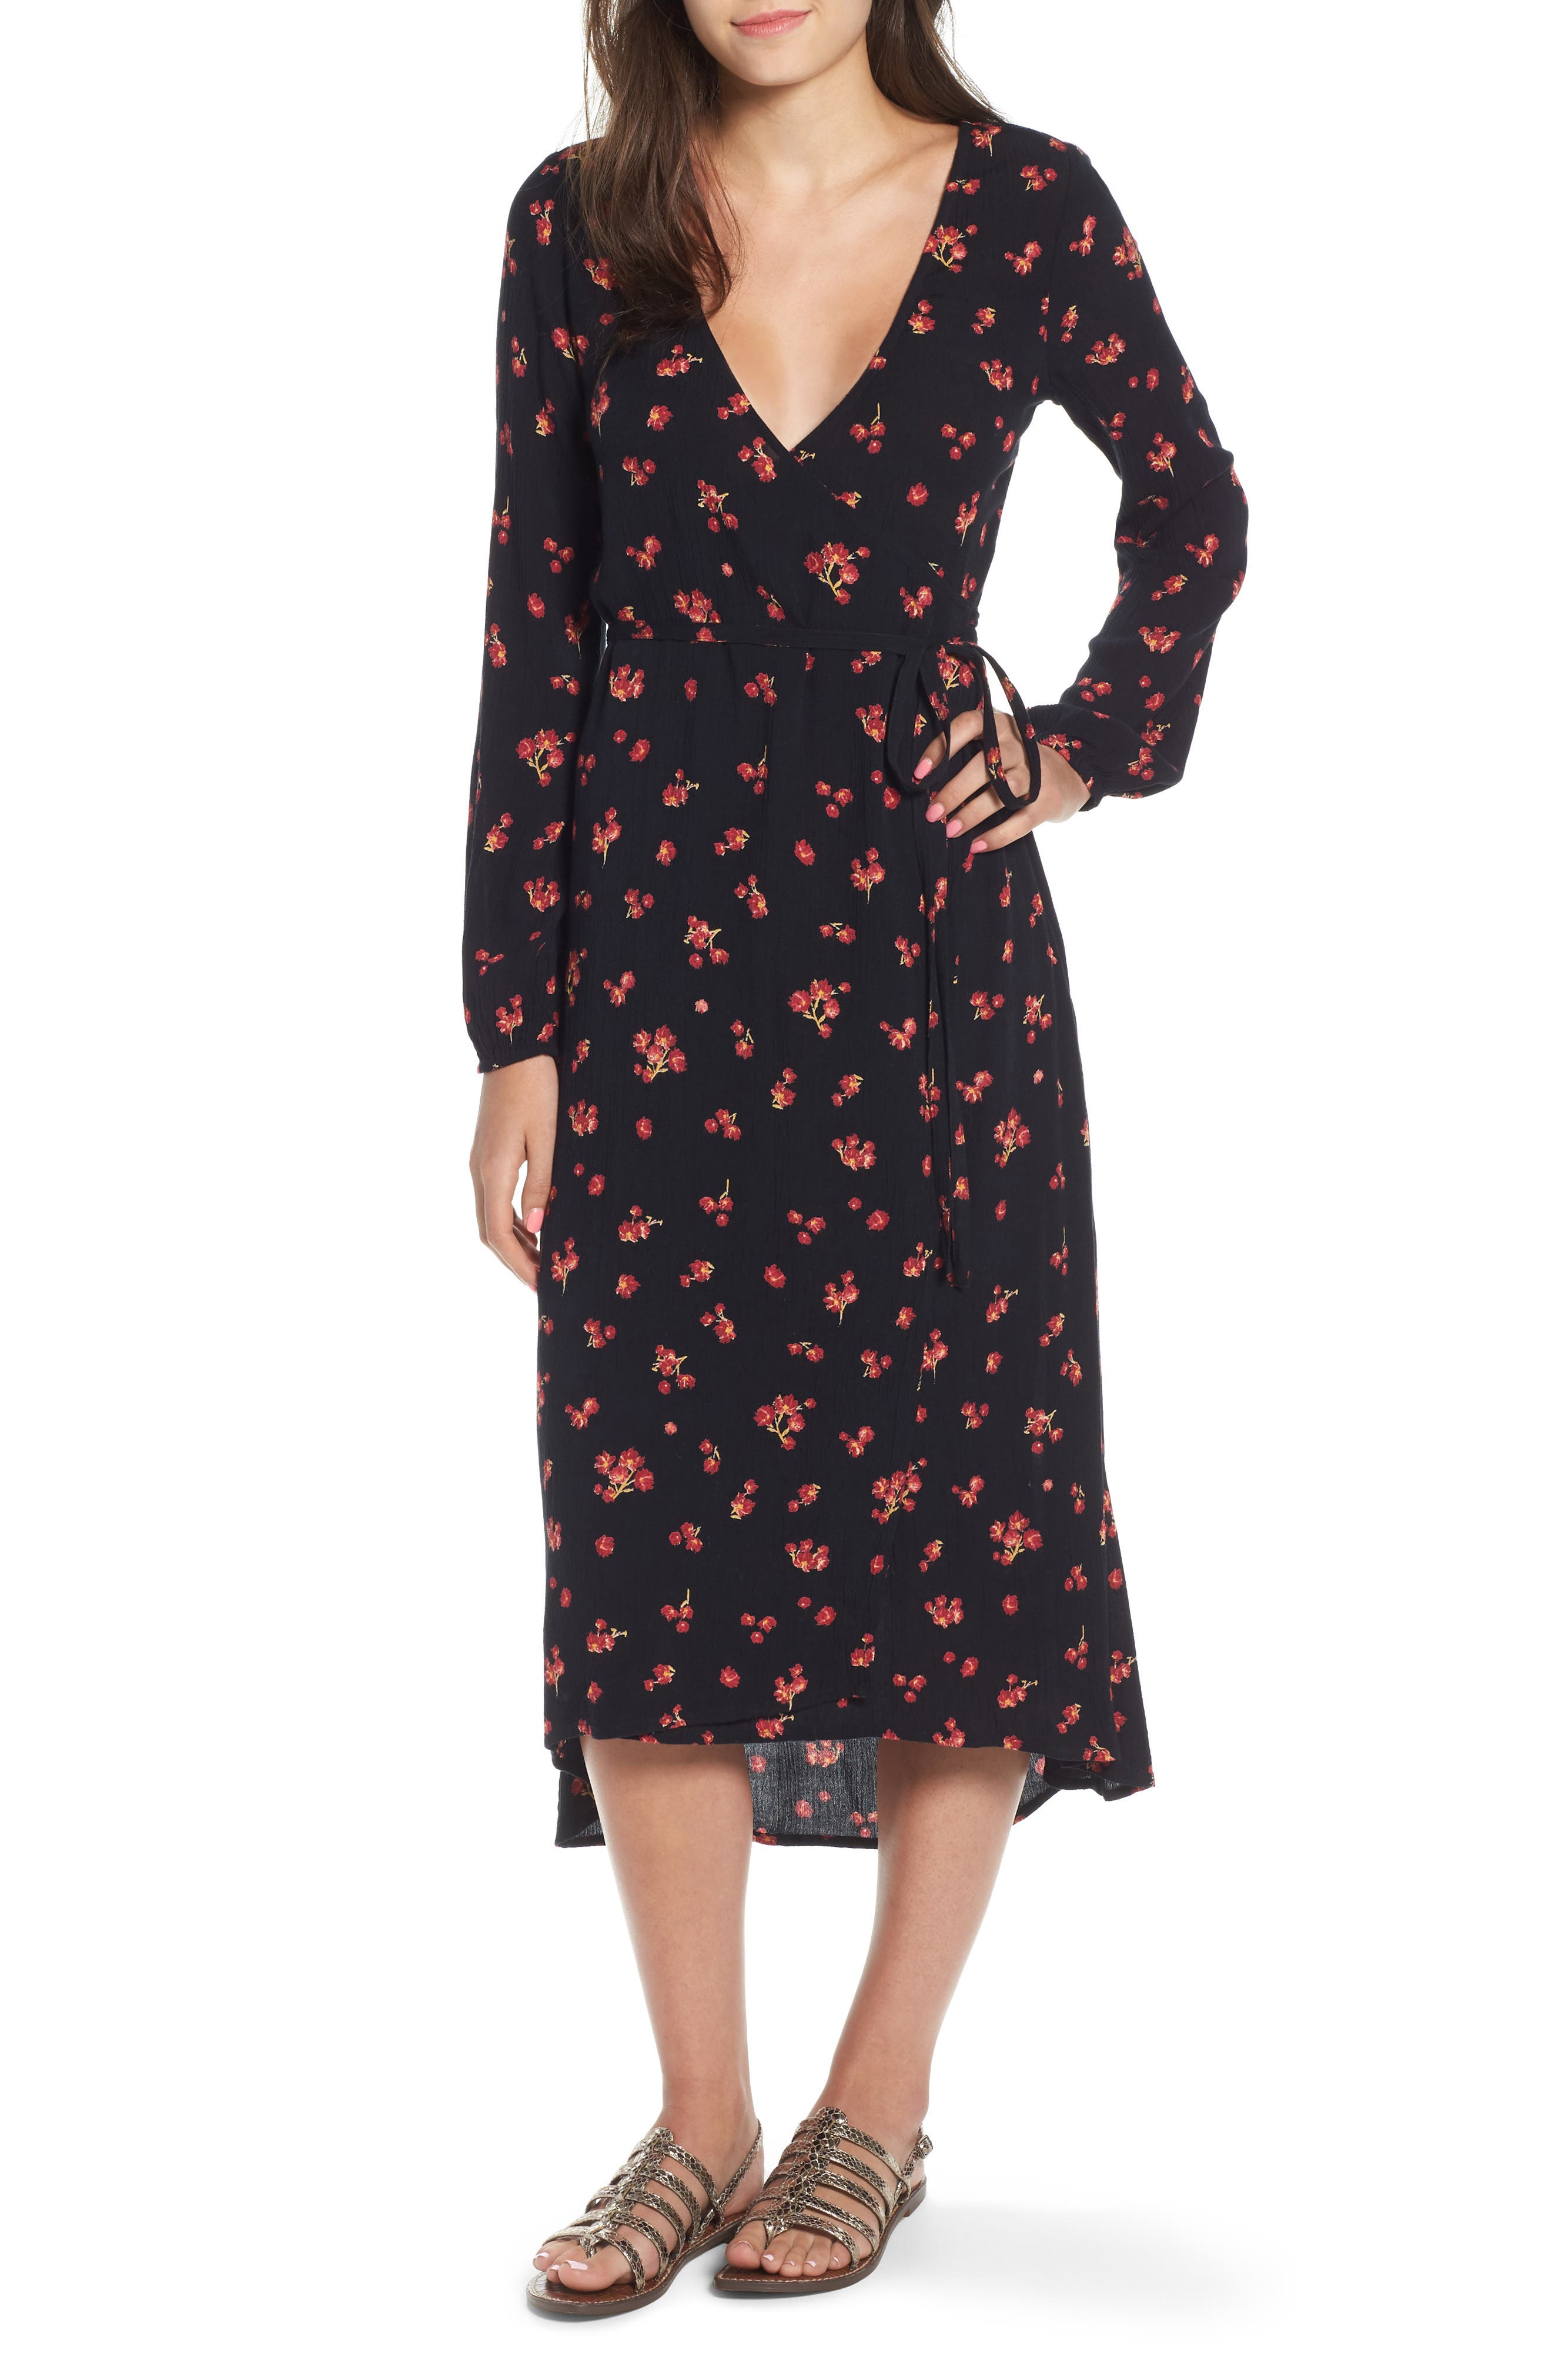 Forever Wild Floral Print Wrap Dress,                             Main thumbnail 1, color,                             001